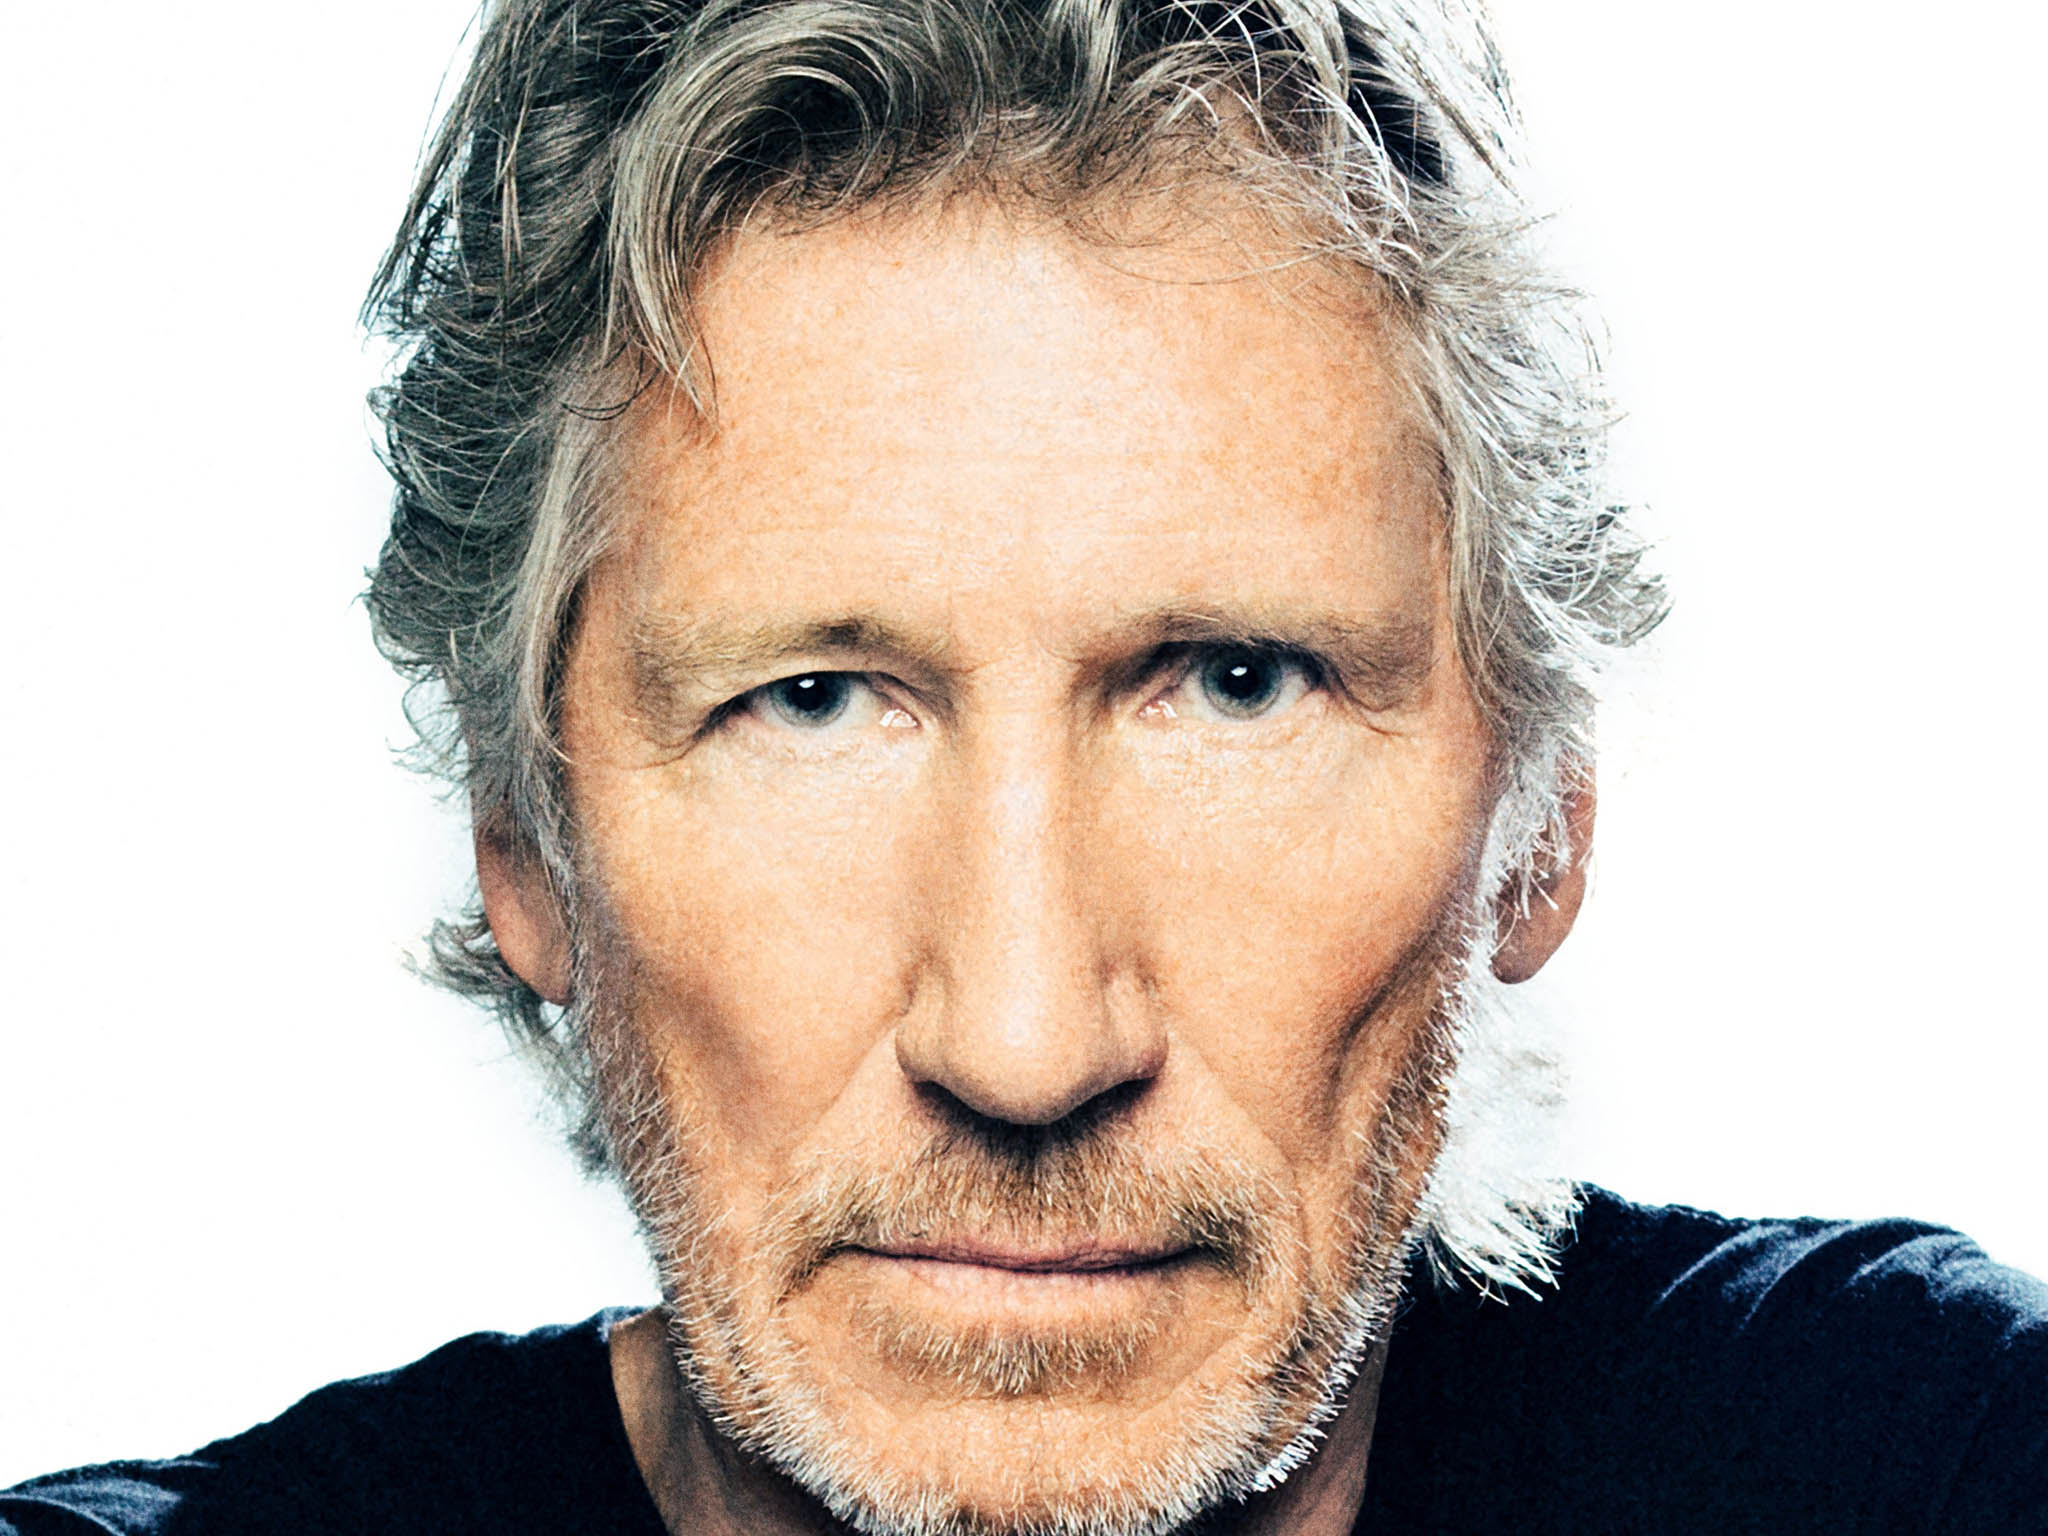 Roger Waters free press image